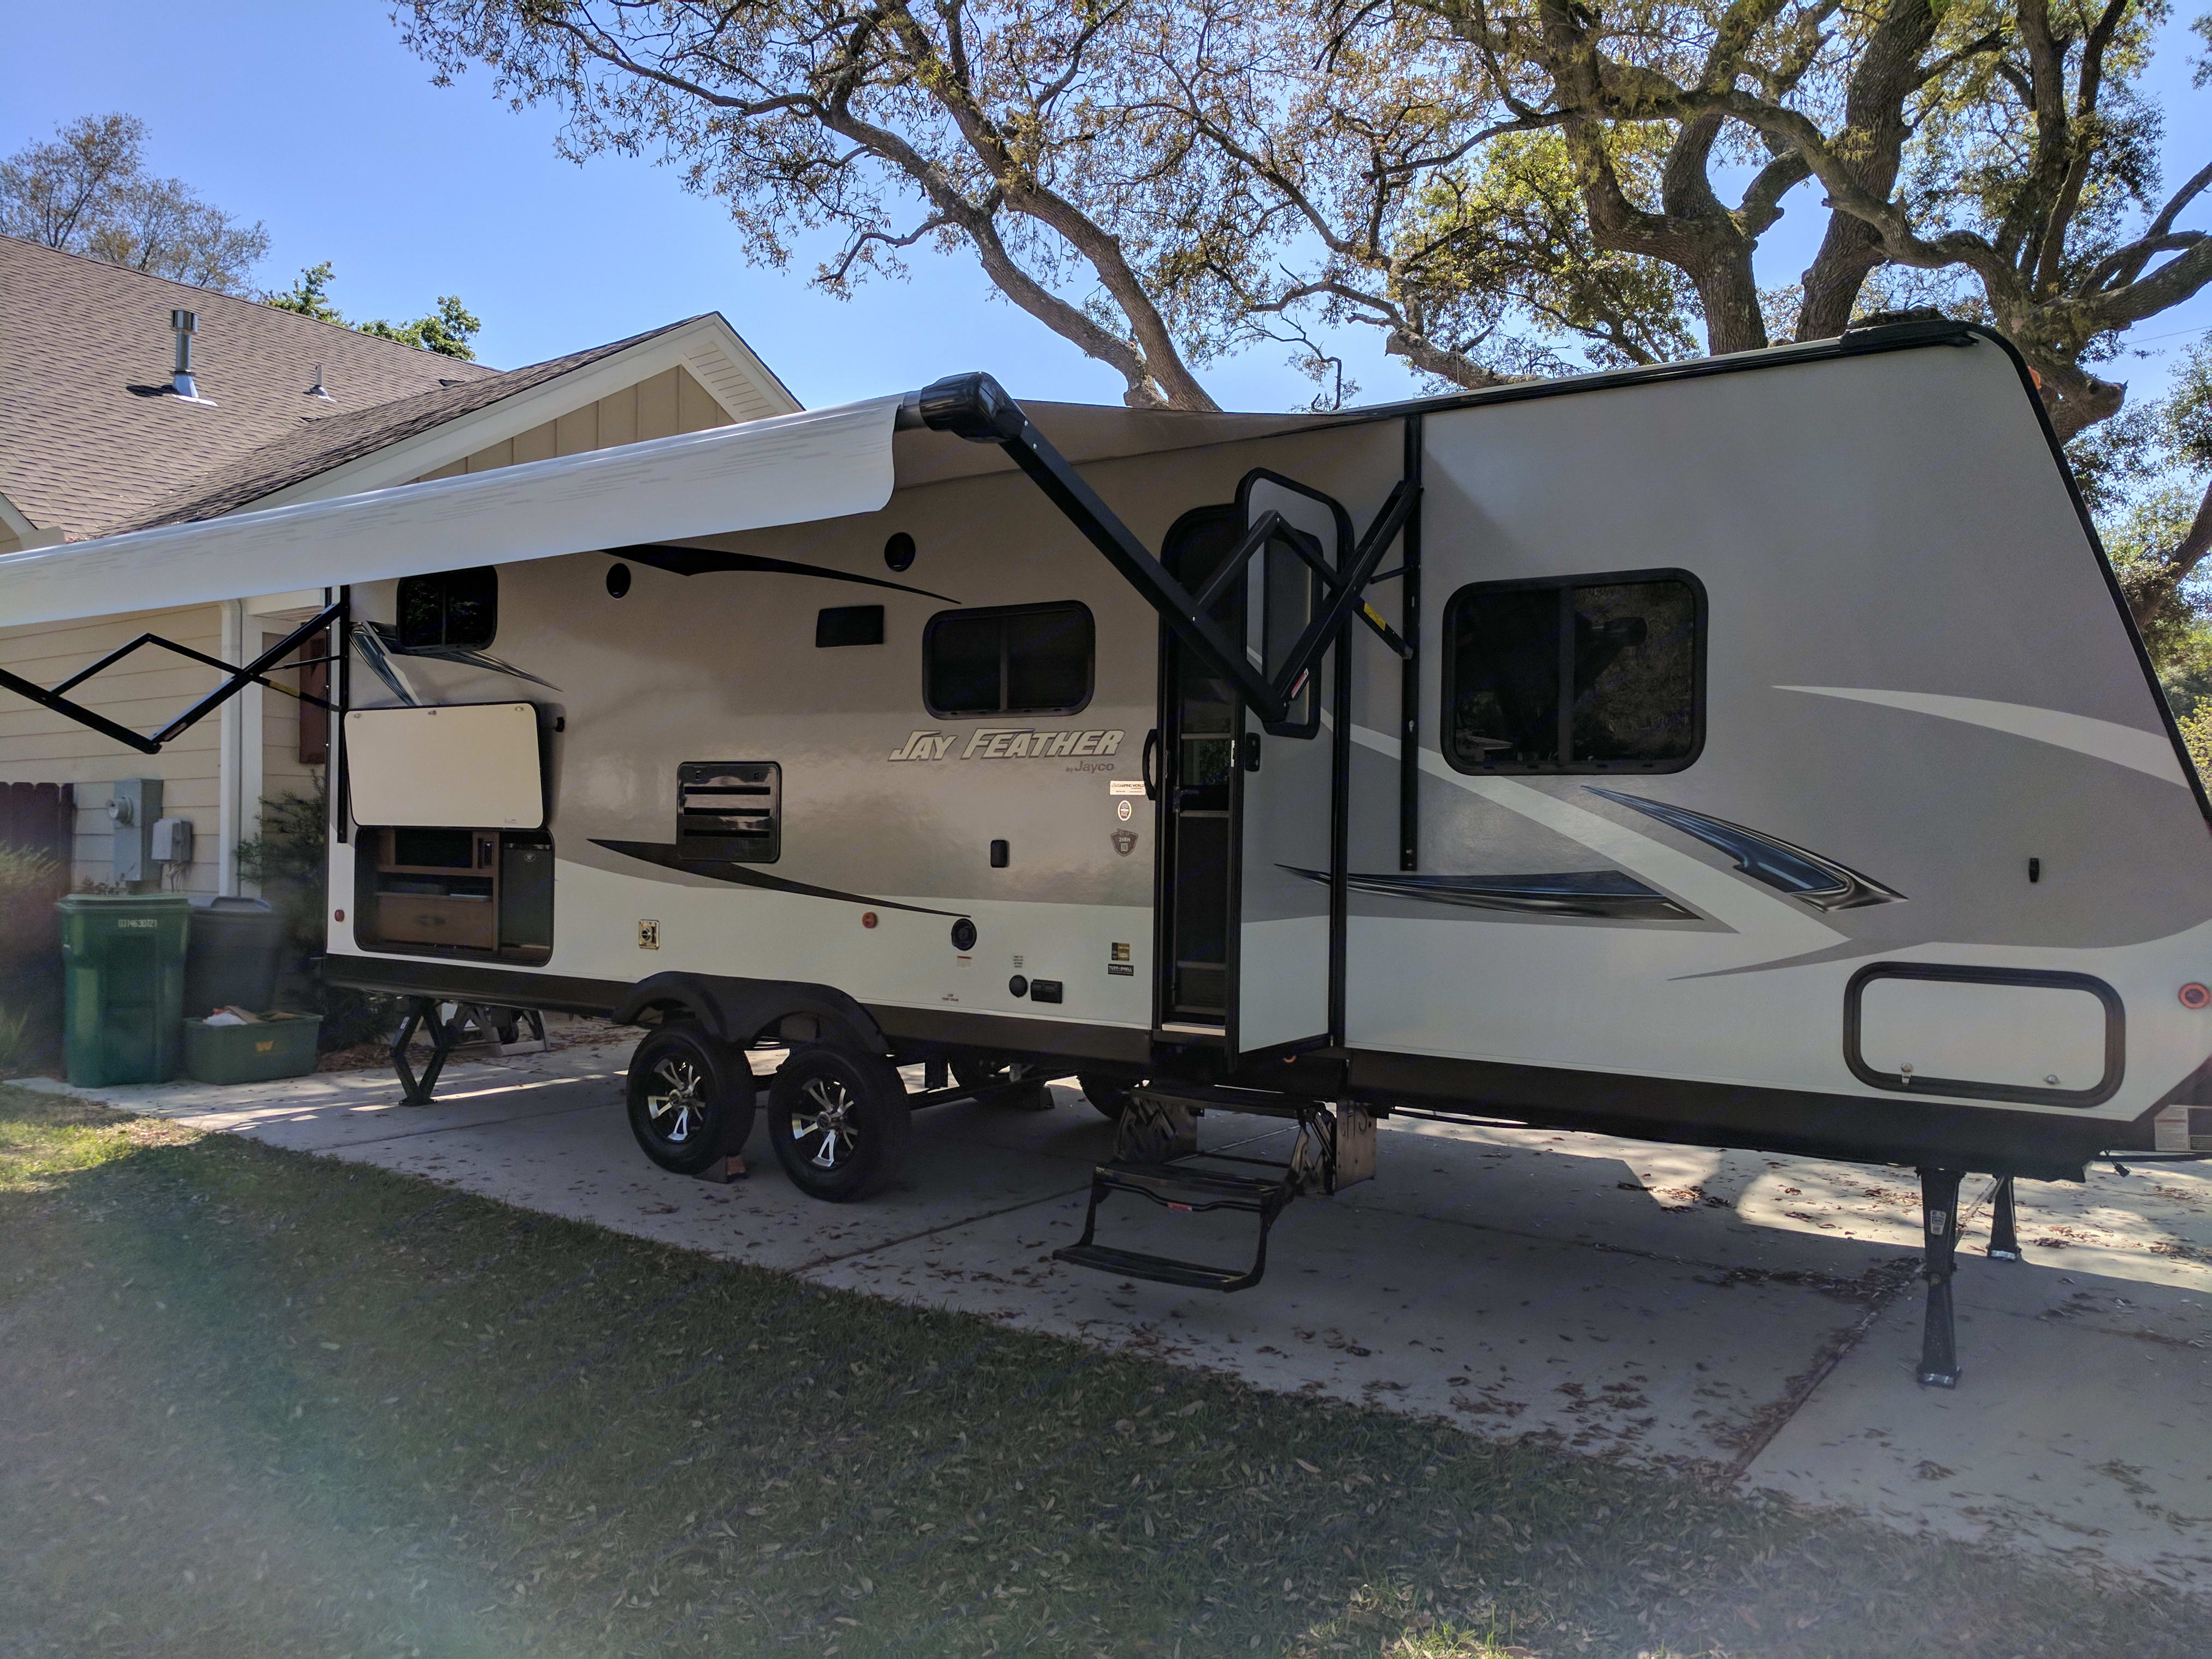 Outdoor two burner stove top with sink and refrigerator located under the awning. . Jayco Jay Feather 2017